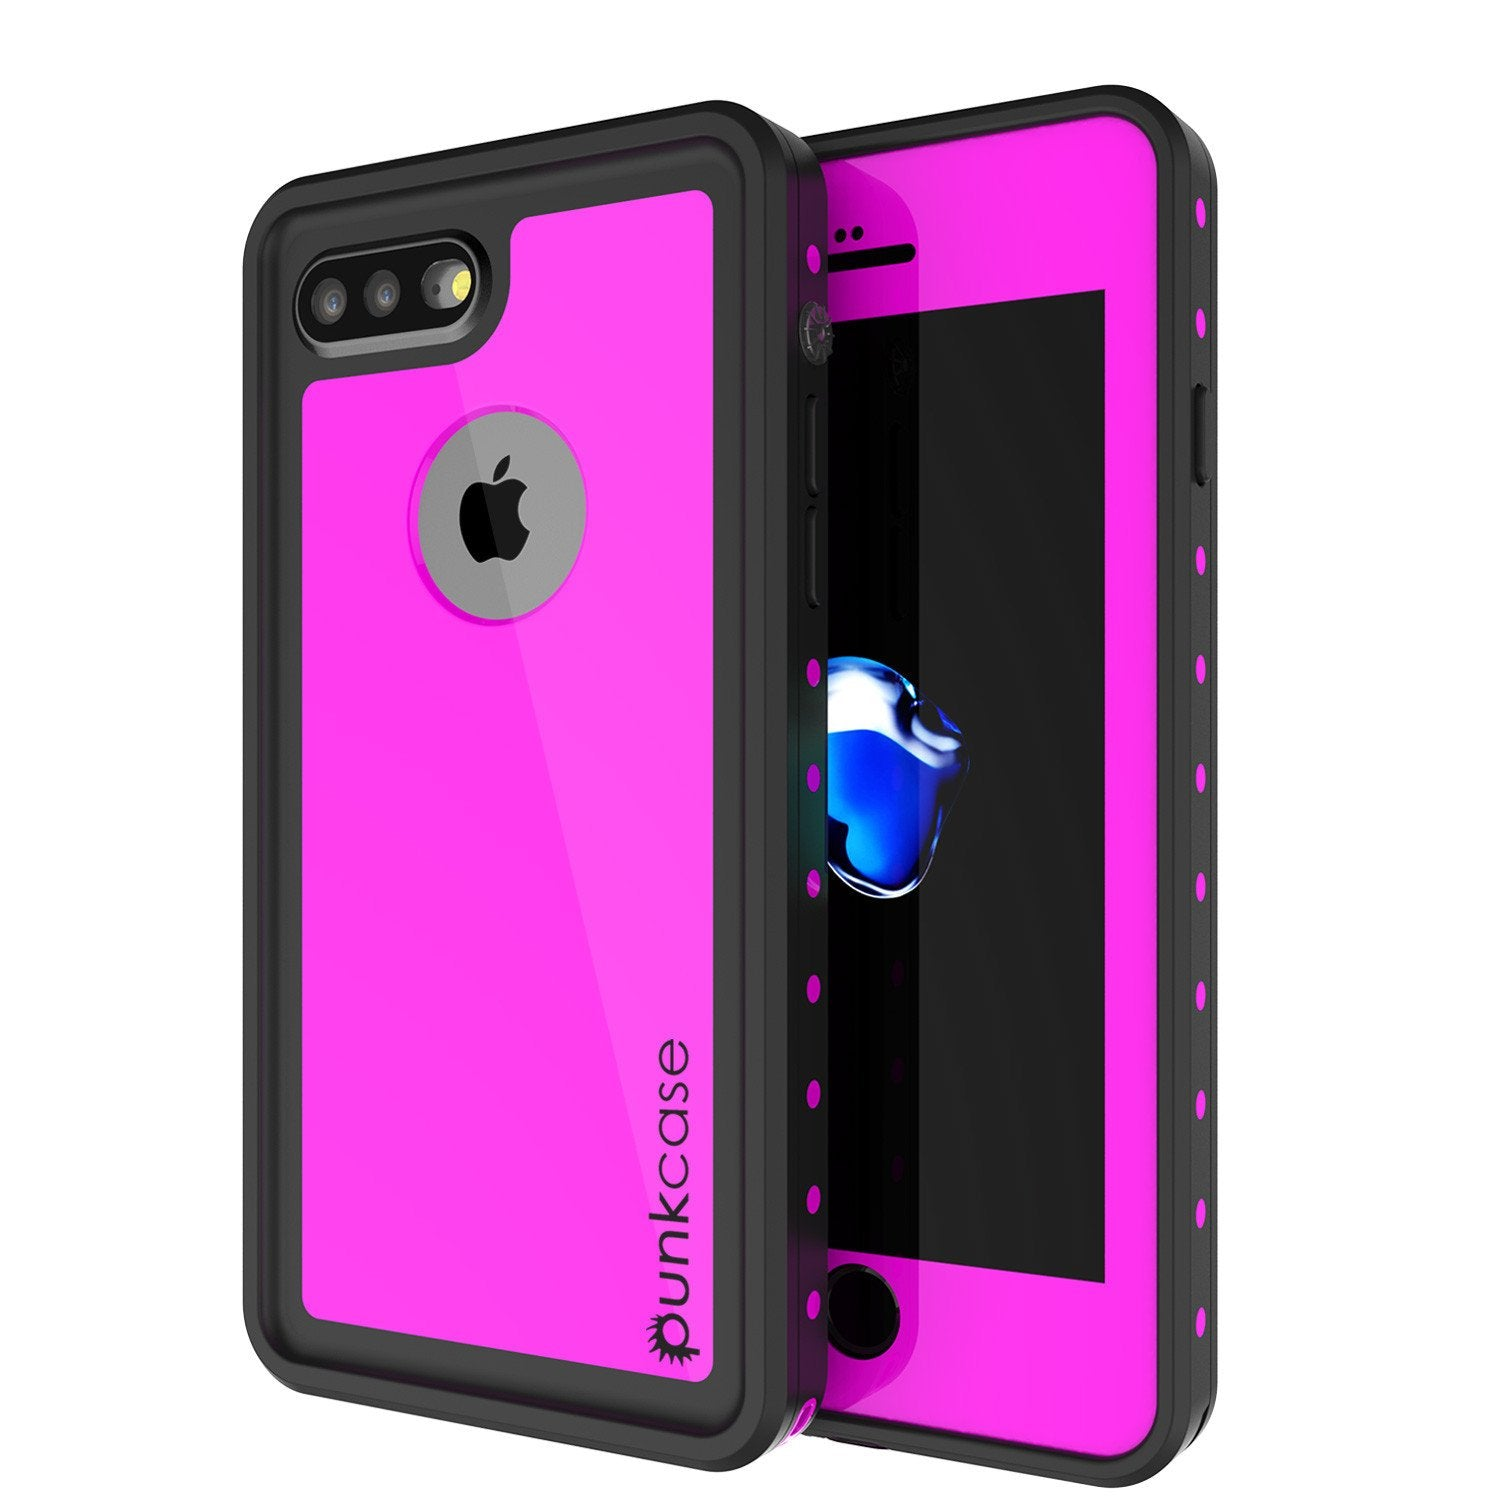 iPhone 8+ Plus Waterproof Case, Punkcase [StudStar Series] [Pink] [Slim Fit] [IP68 Certified] [Shockproof] [Dirtproof] Armor Cover